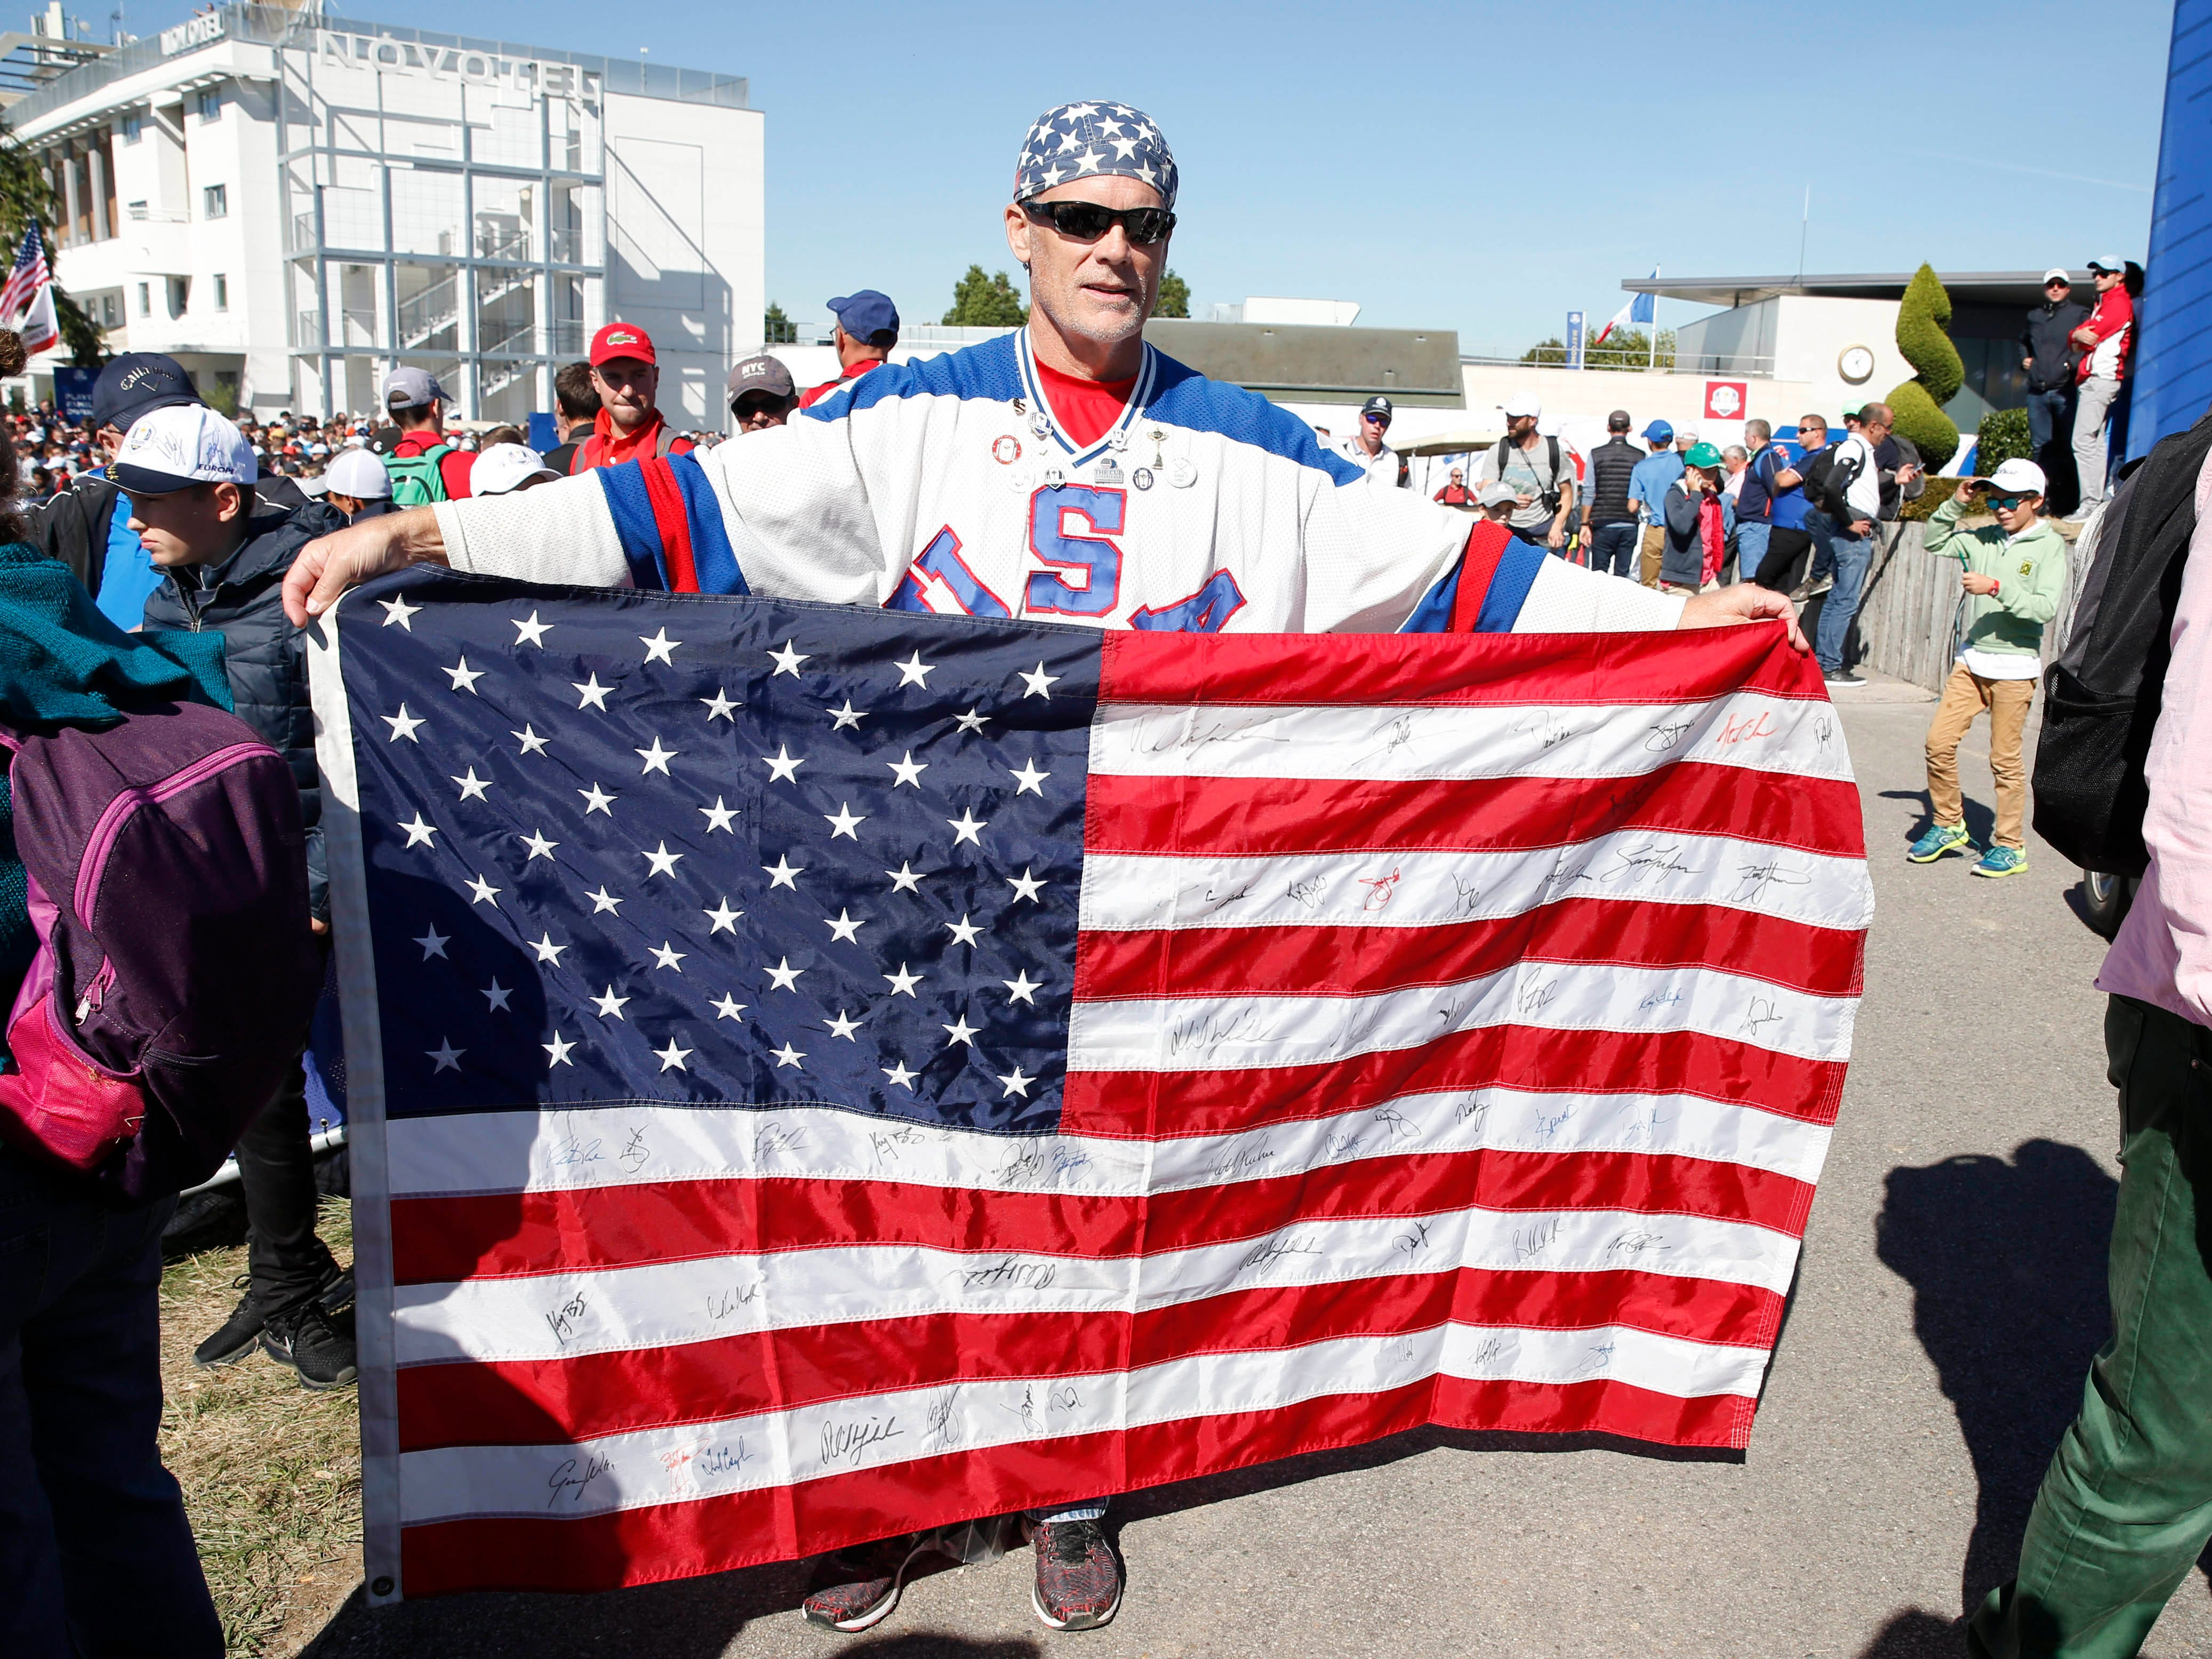 USA fan holds up an autographed flag during a Ryder Cup practice round.